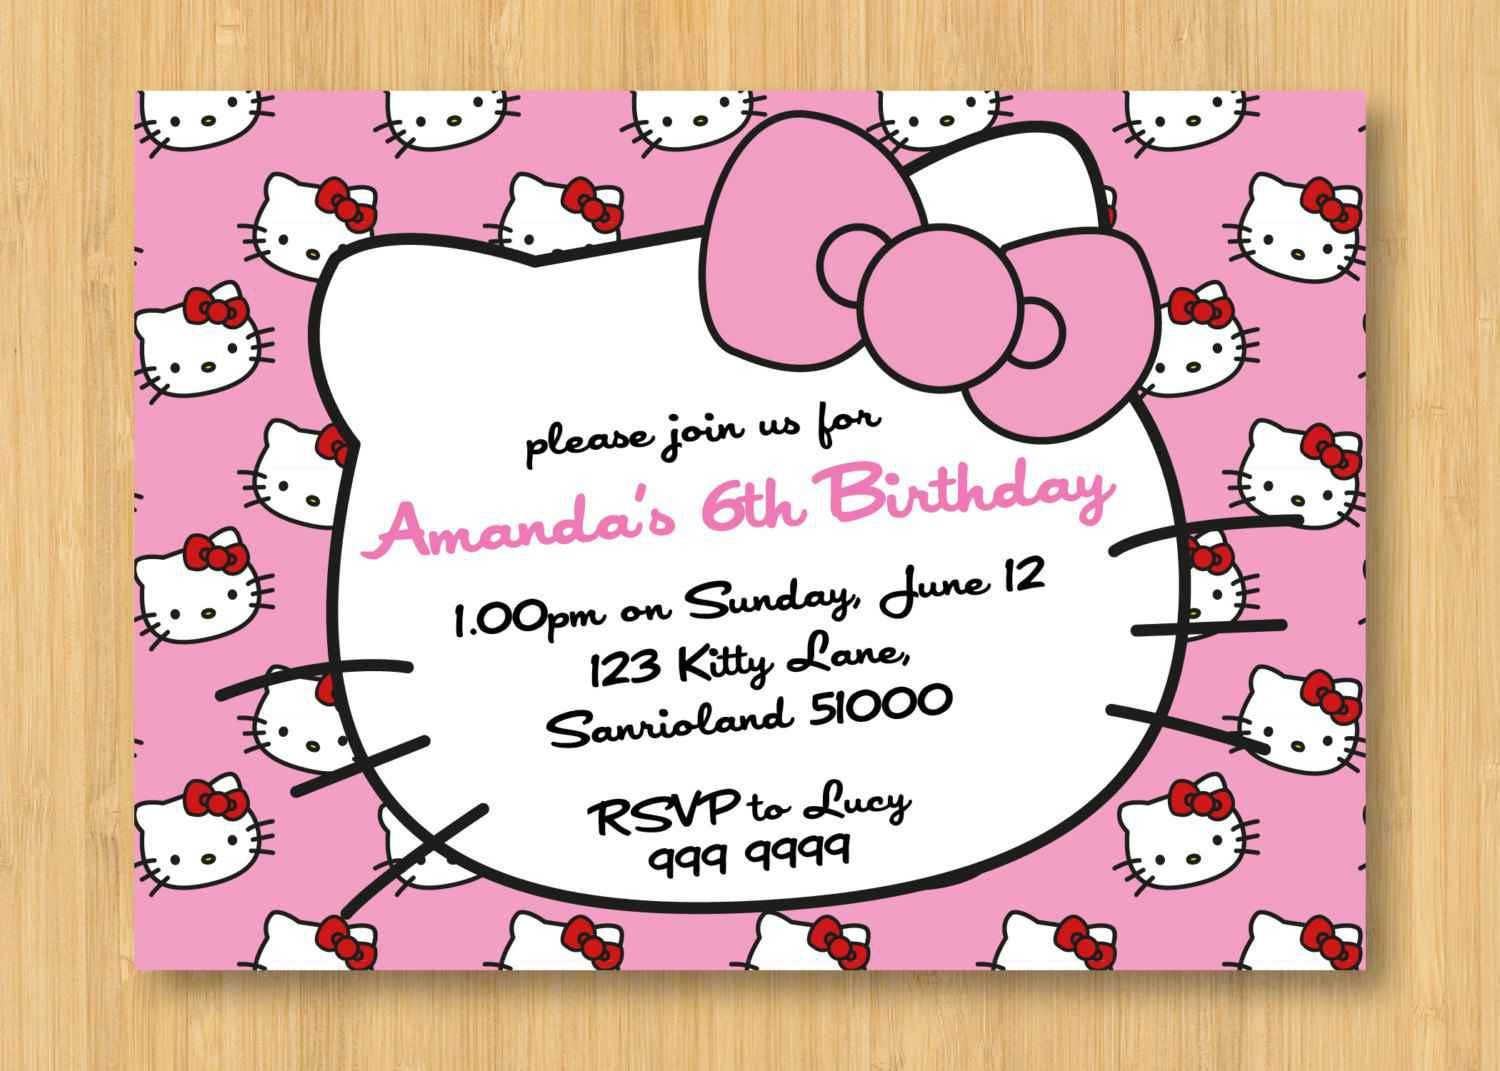 birthday-party-invitations-australia | birthday invitations template ...